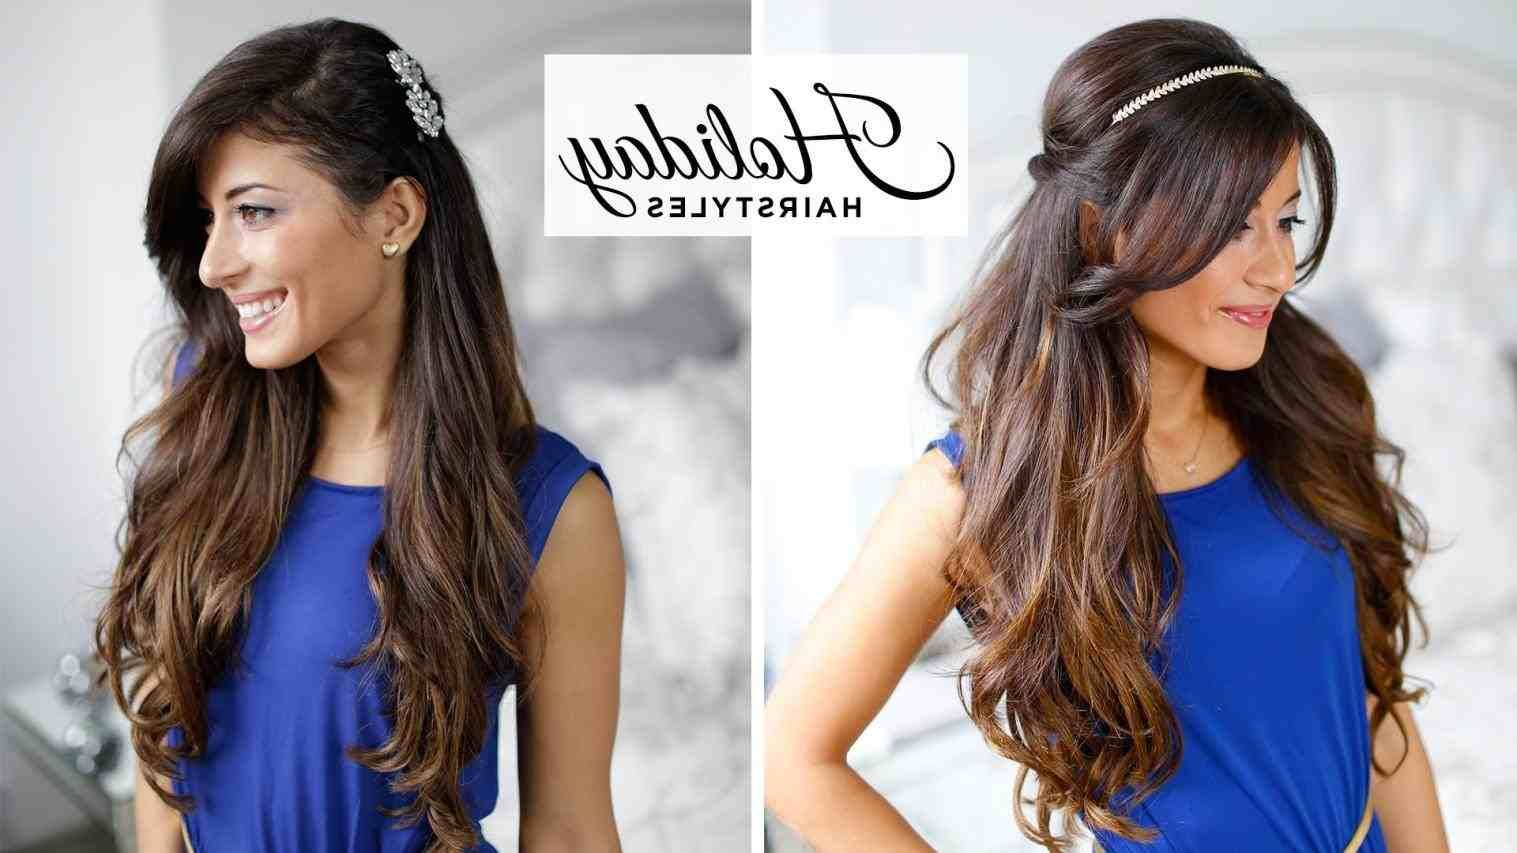 Balayagehair Club Nbspthis Website Is For Sale Nbspbalayagehair Resources And Information Easy Party Hairstyles Party Hairstyles For Long Hair Easy Hairstyles